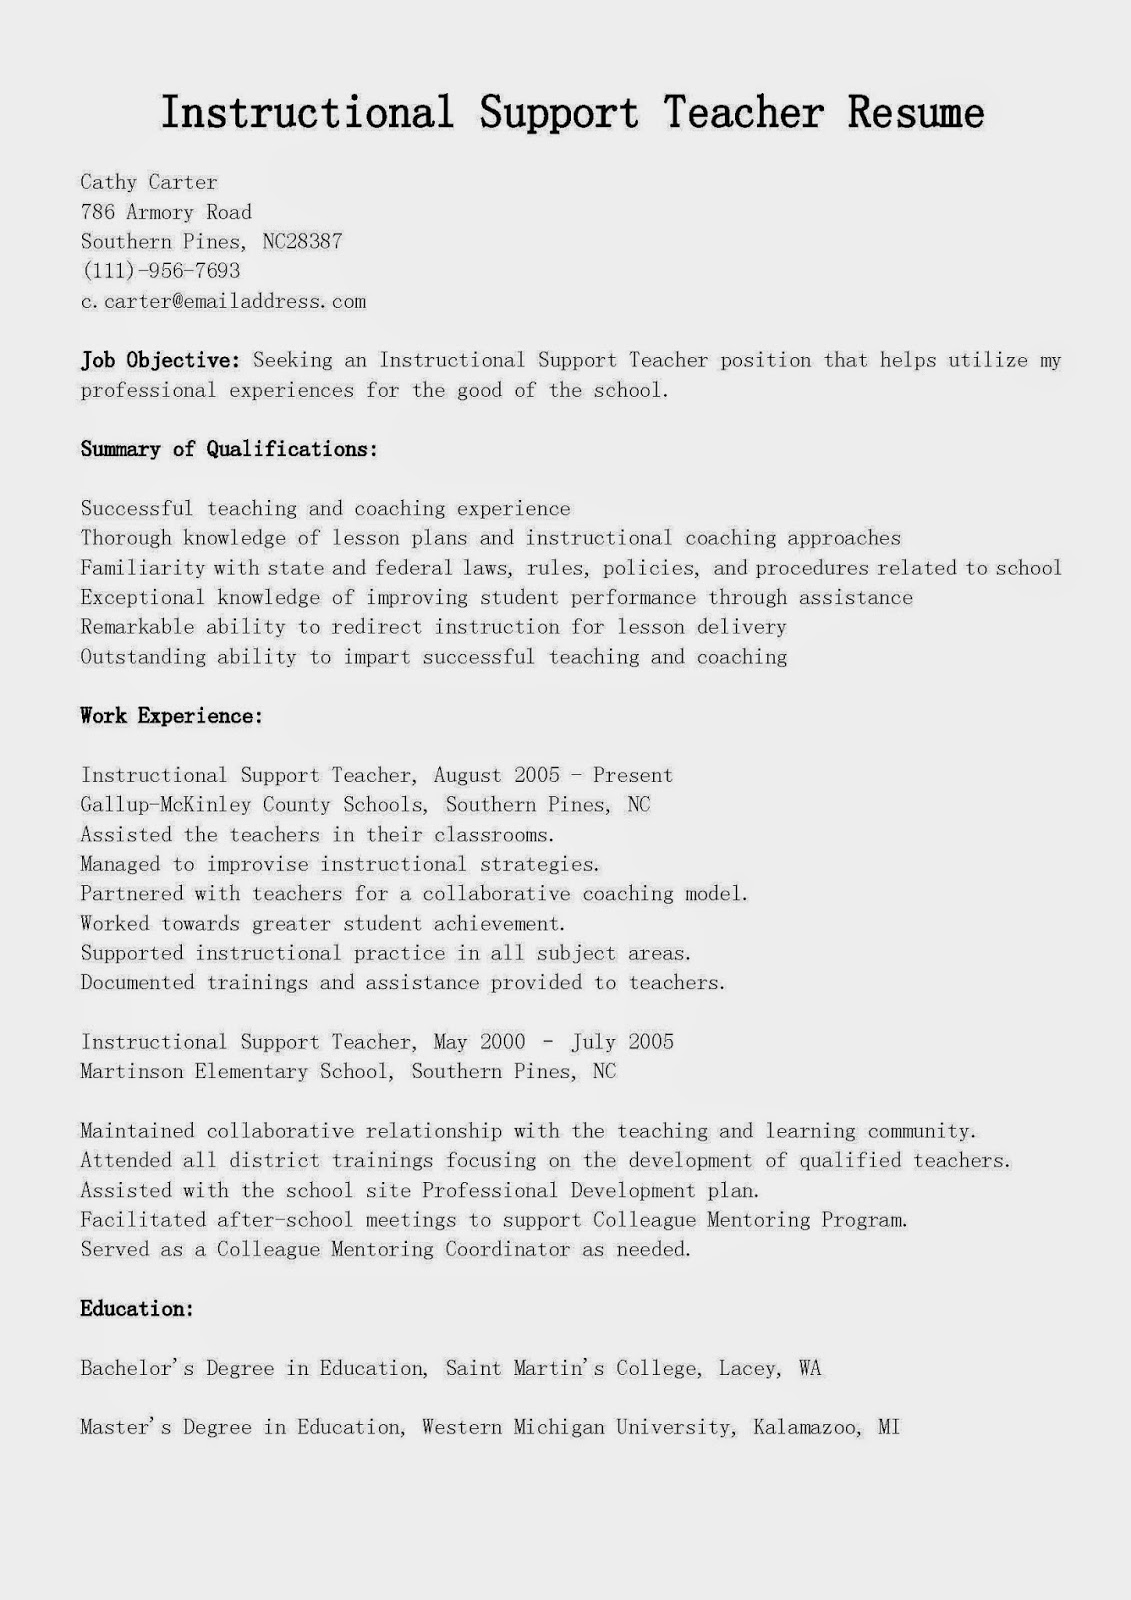 resume help me build my resume cv making help making resume - Build My Resume